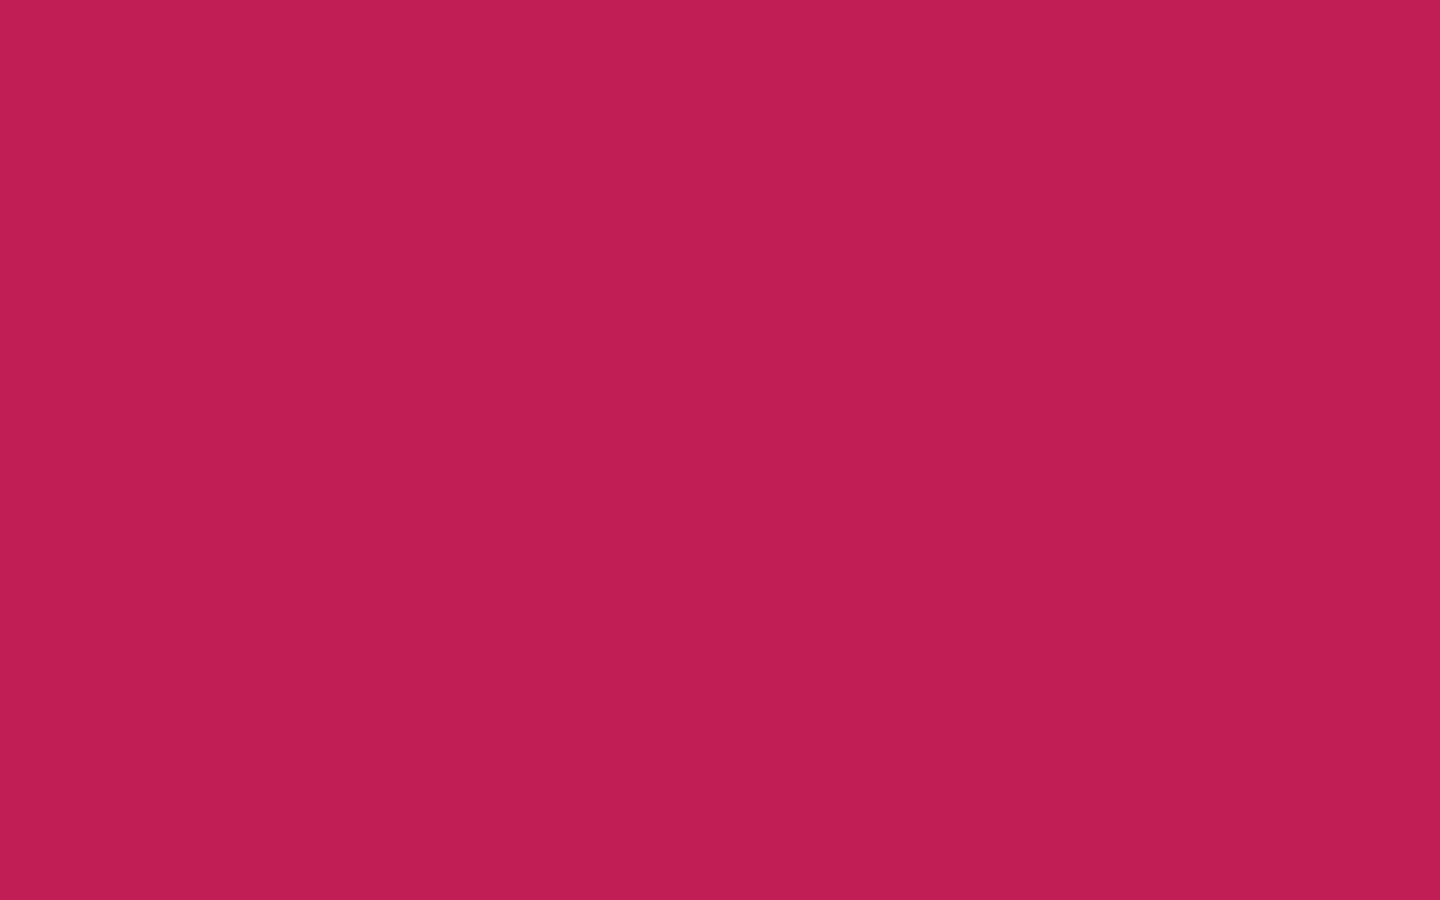 1440x900 Rose Red Solid Color Background